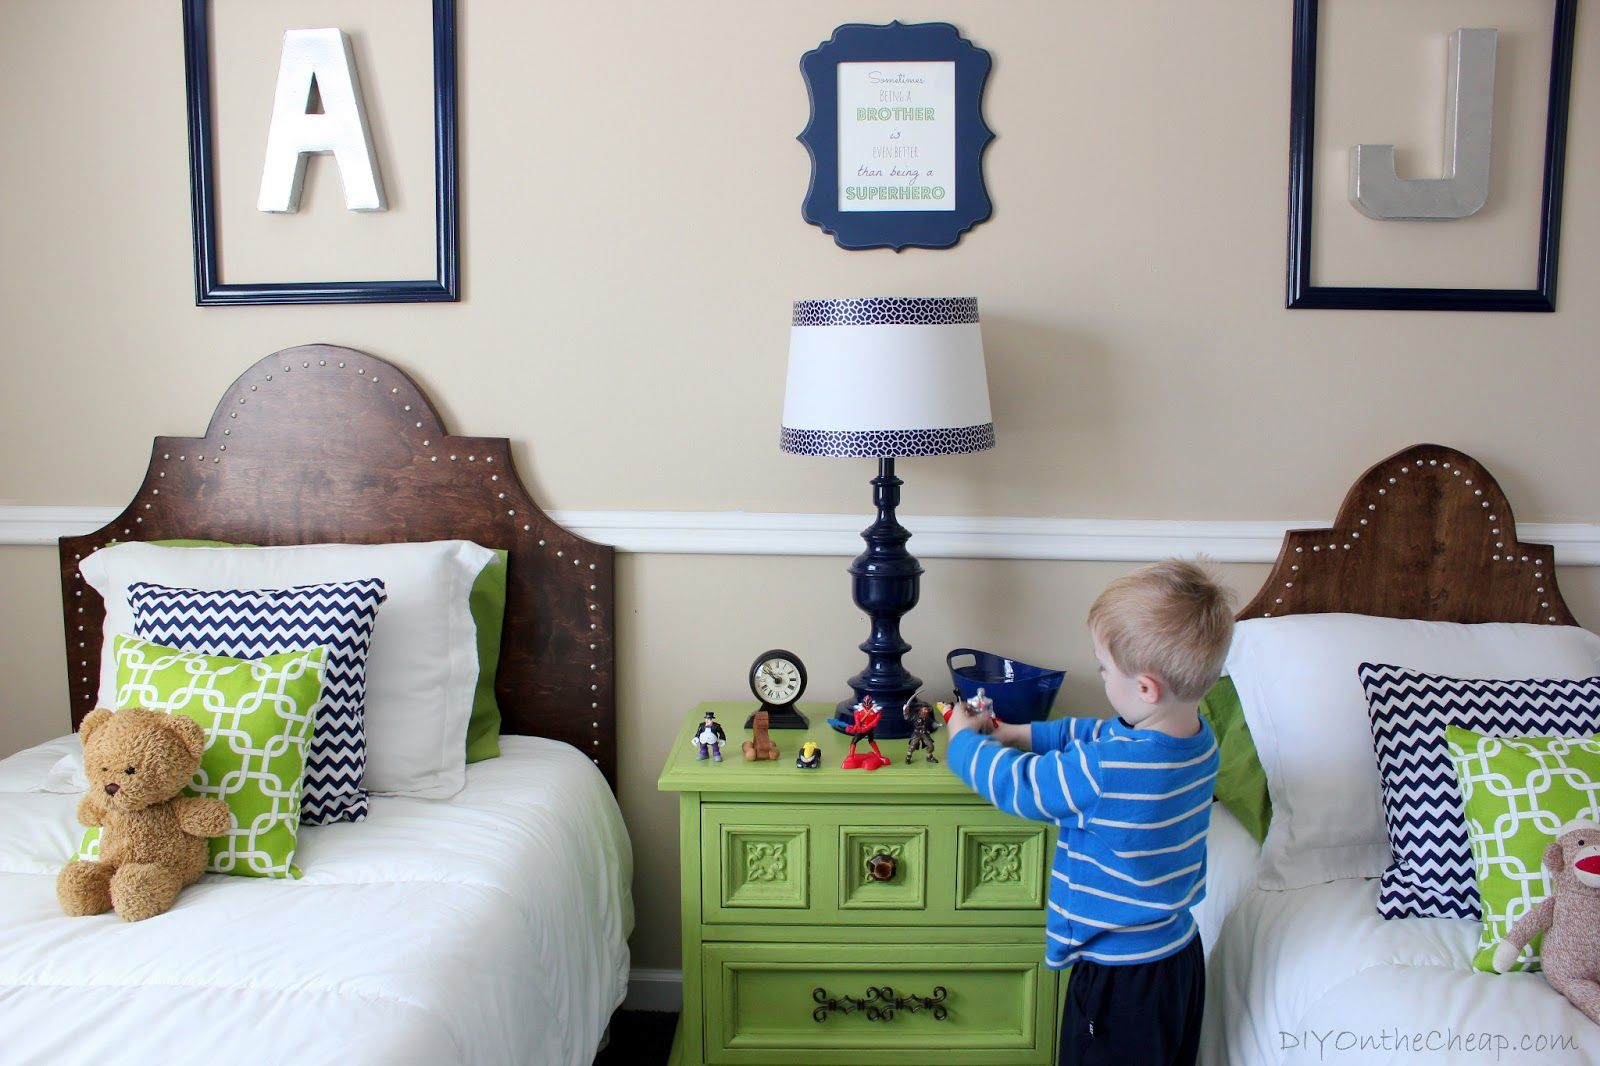 Extraordinary Beige Shared Kids Room With Light Green Nightstand Table And  Reclaimed Wood Headboard Also Alphabets Wall Ornaments